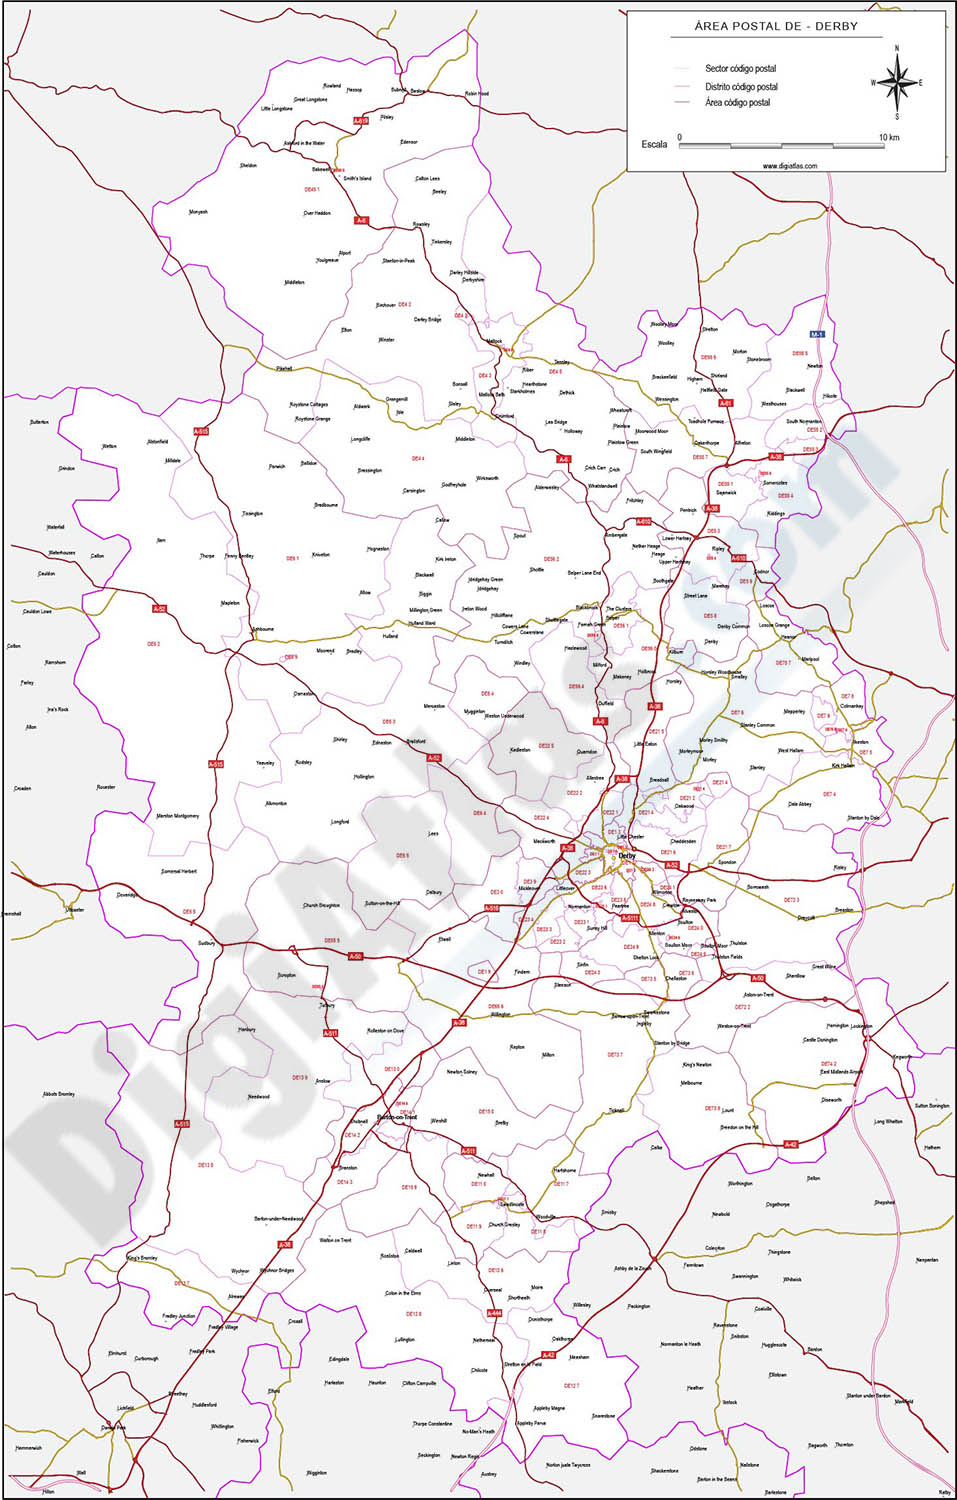 Derby - map of postcode area (DE) with cities and major roads